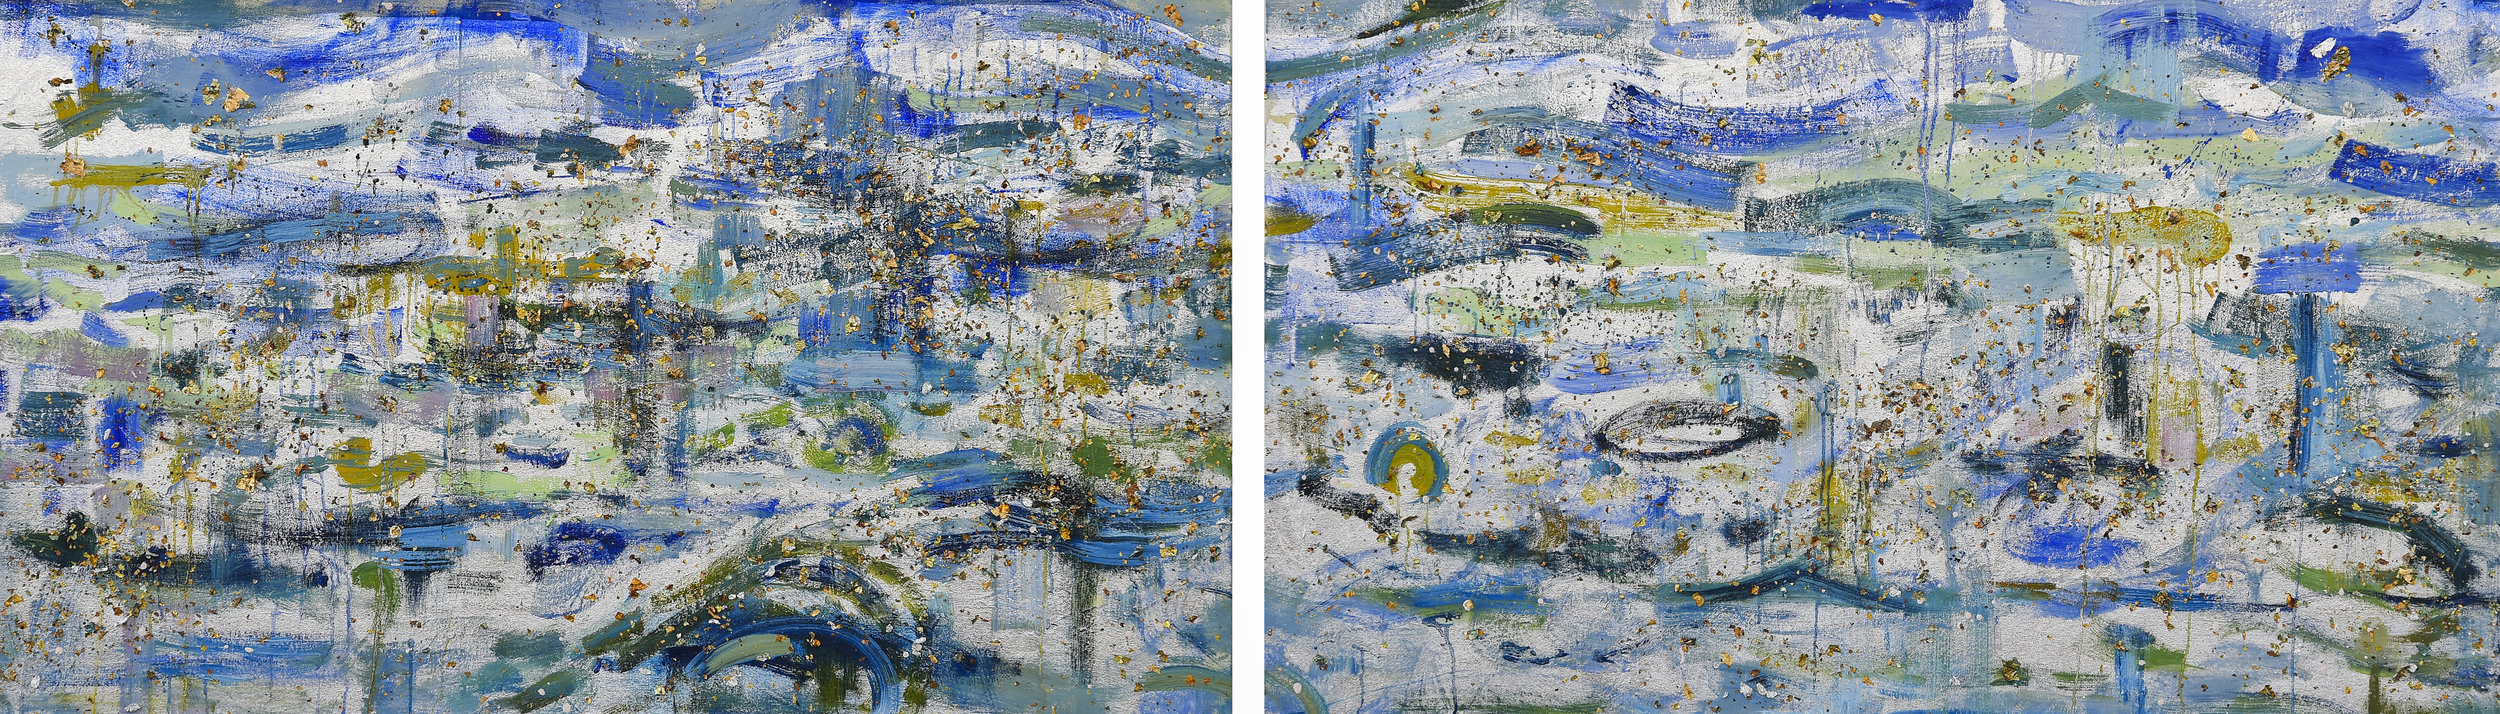 Subconscious Flow*#33 x 110 in. total, diptych